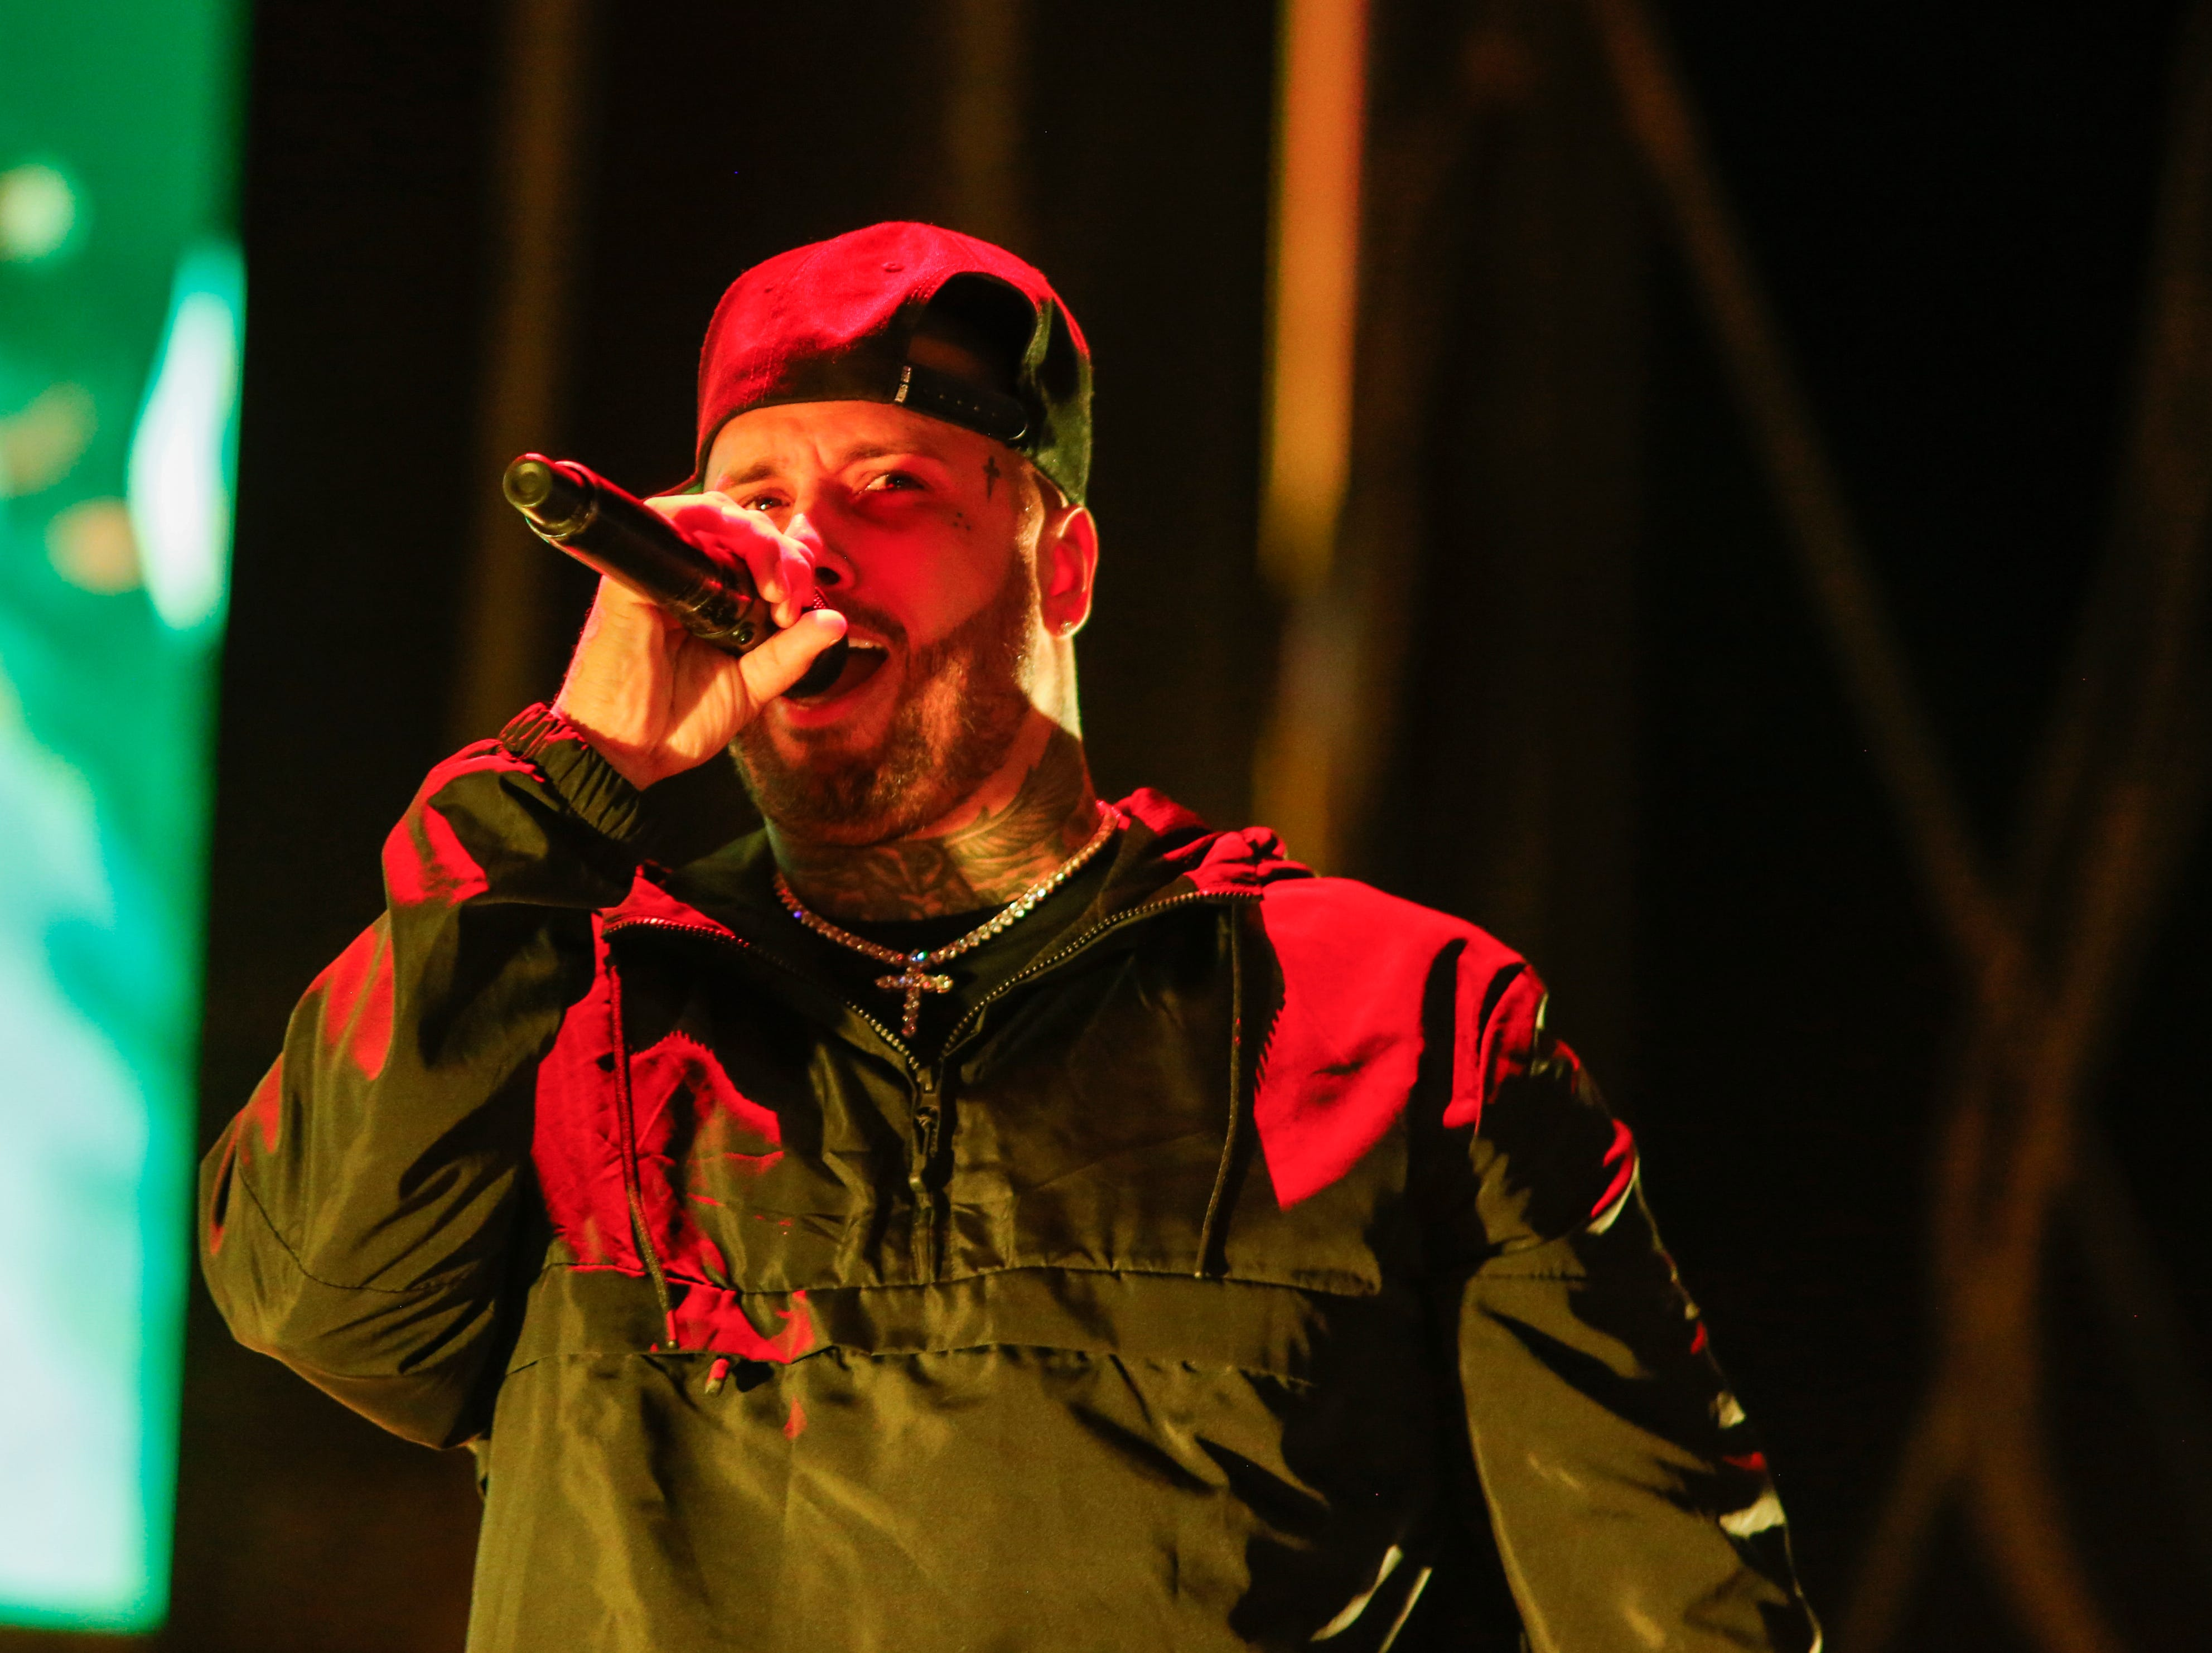 Singer Nicky Jam performed at Ascarate Park on Sunday night.